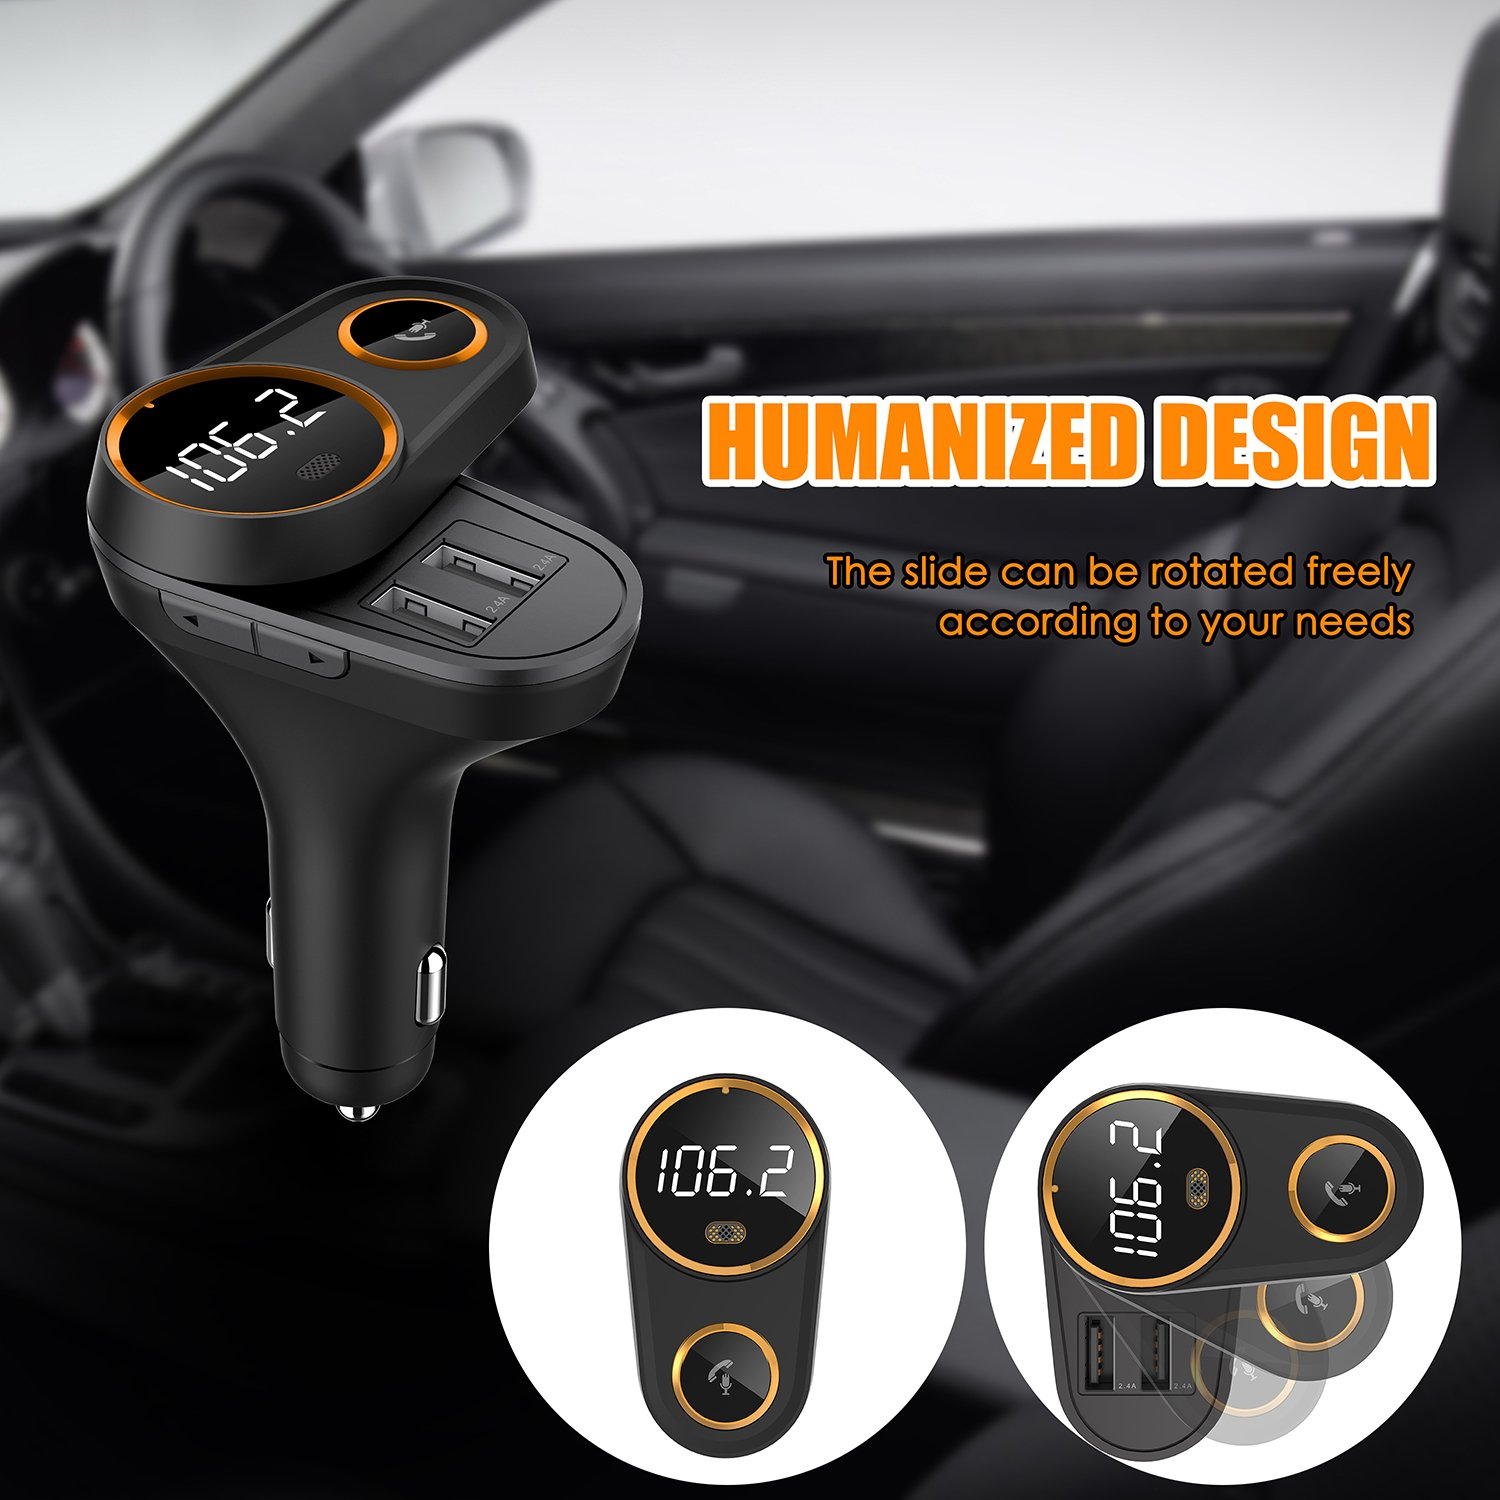 Bluetooth FM Transmitter for Car, Yurchuke 2018 Stylish Design Wireless Bluetooth FM Radio Adapter Car Kit with Hands-Free Calling, 5V/4.8A Concealled Dual USB Charging Ports for iPhone iPod iPad ect by Yurchuke (Image #3)